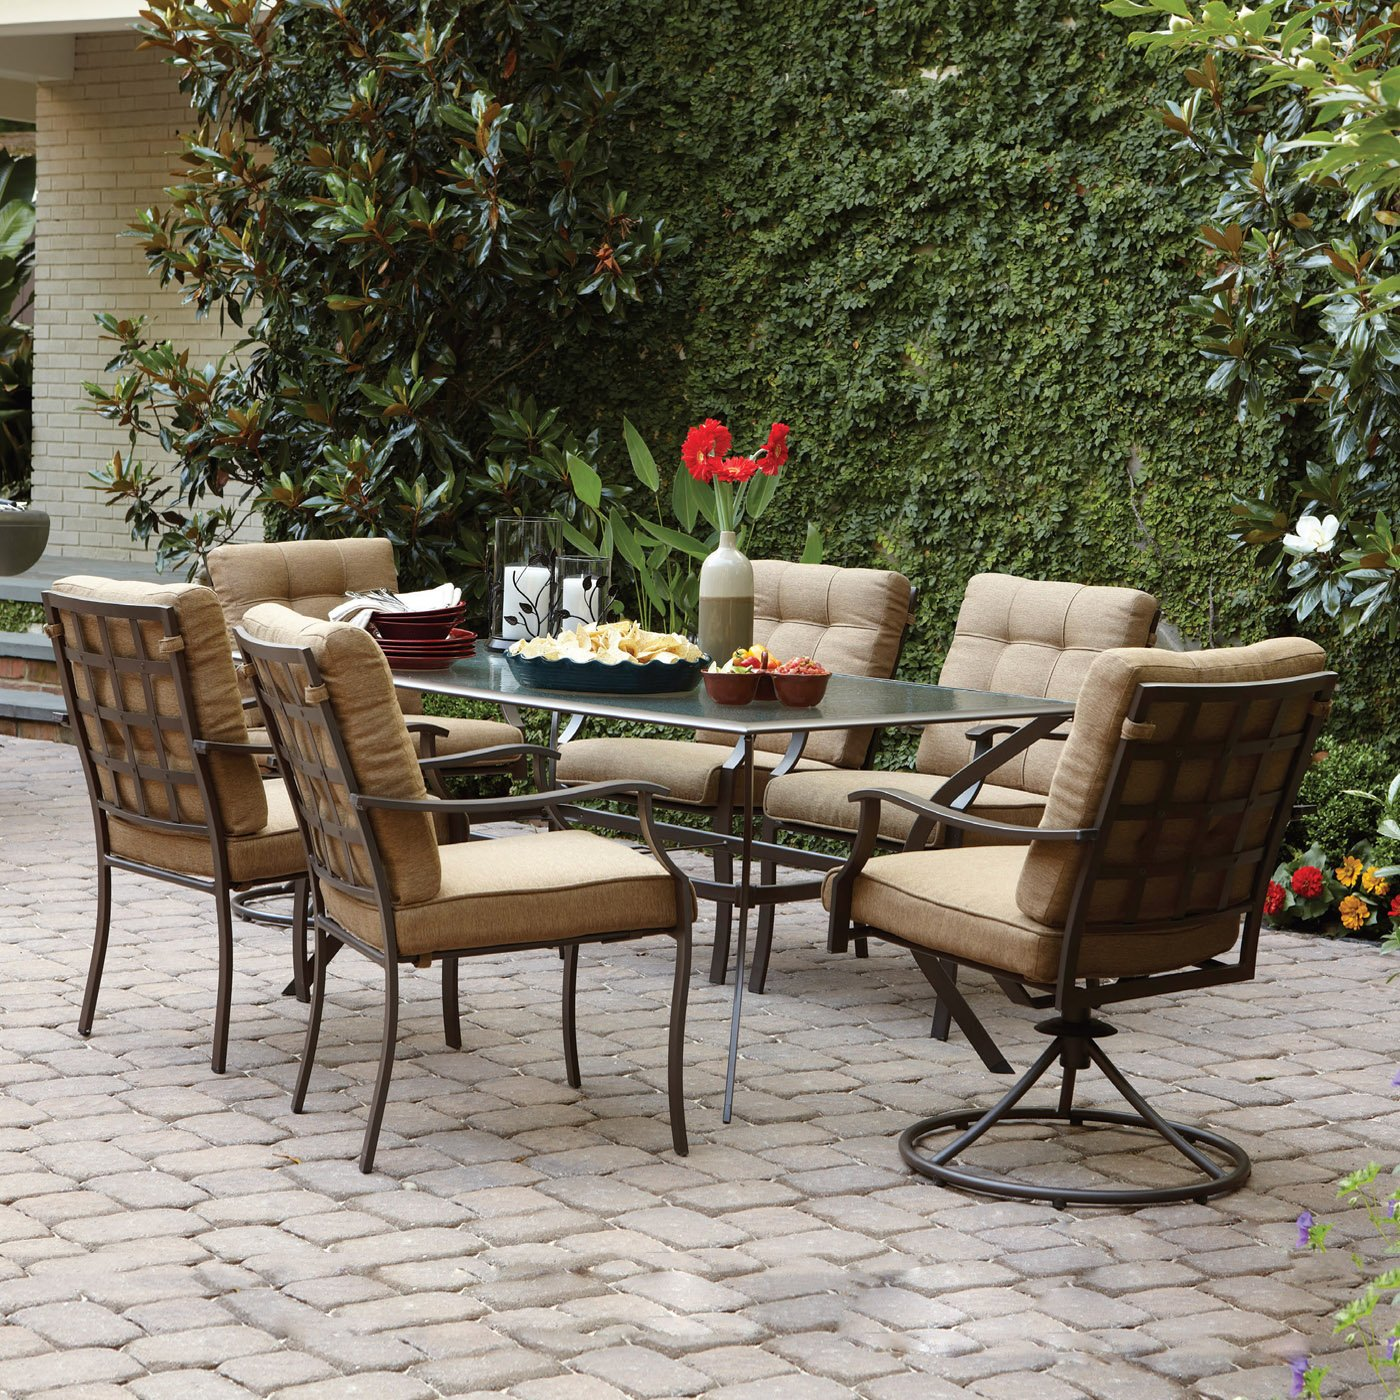 patio-dining-sets-lowes-photo-7